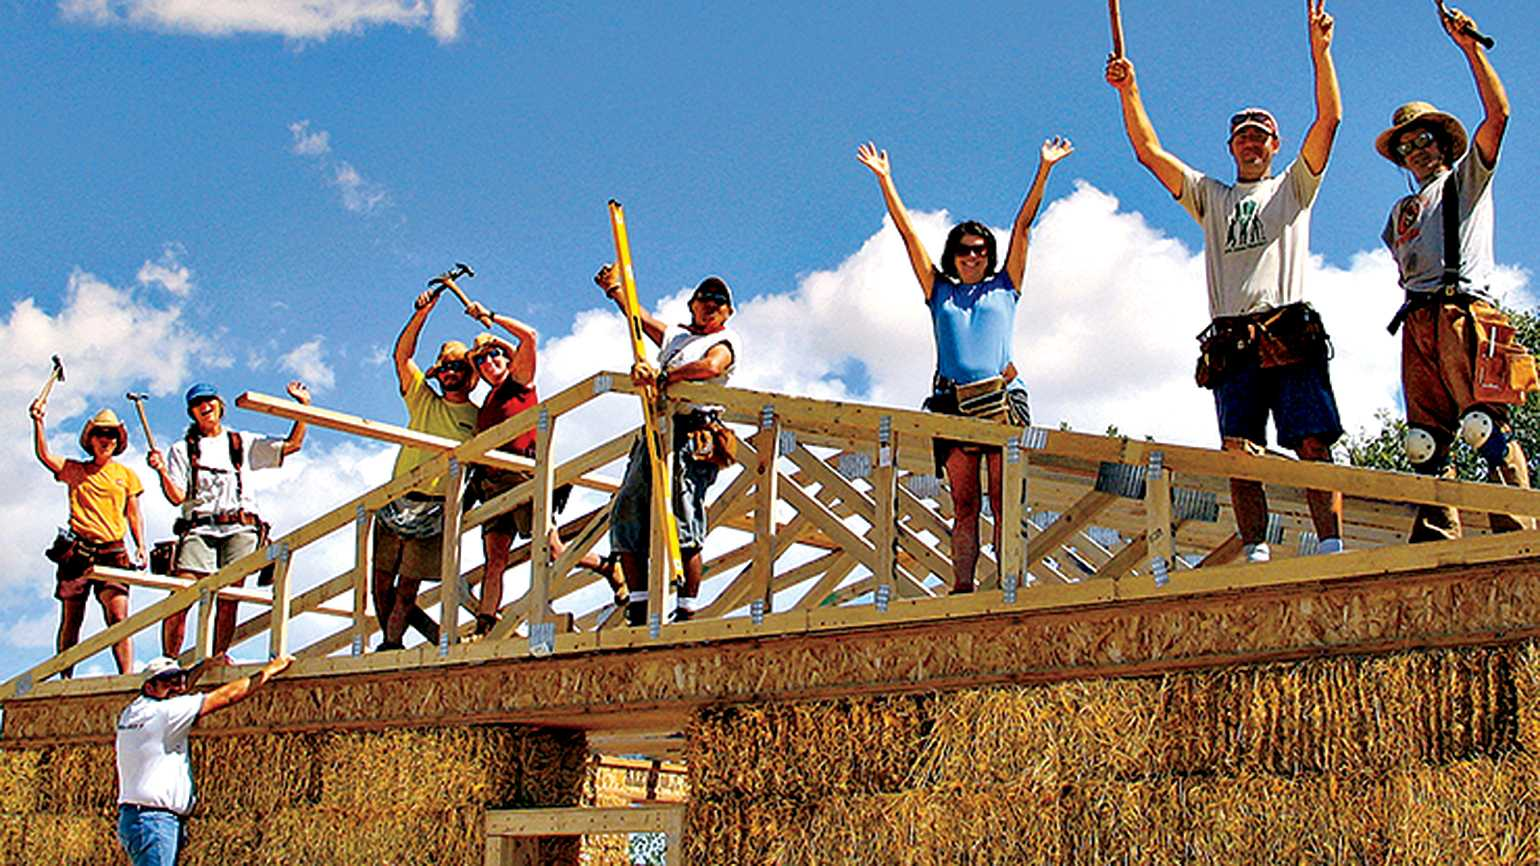 Guideposts volunteers work on a construction project for Red Feather Development Group